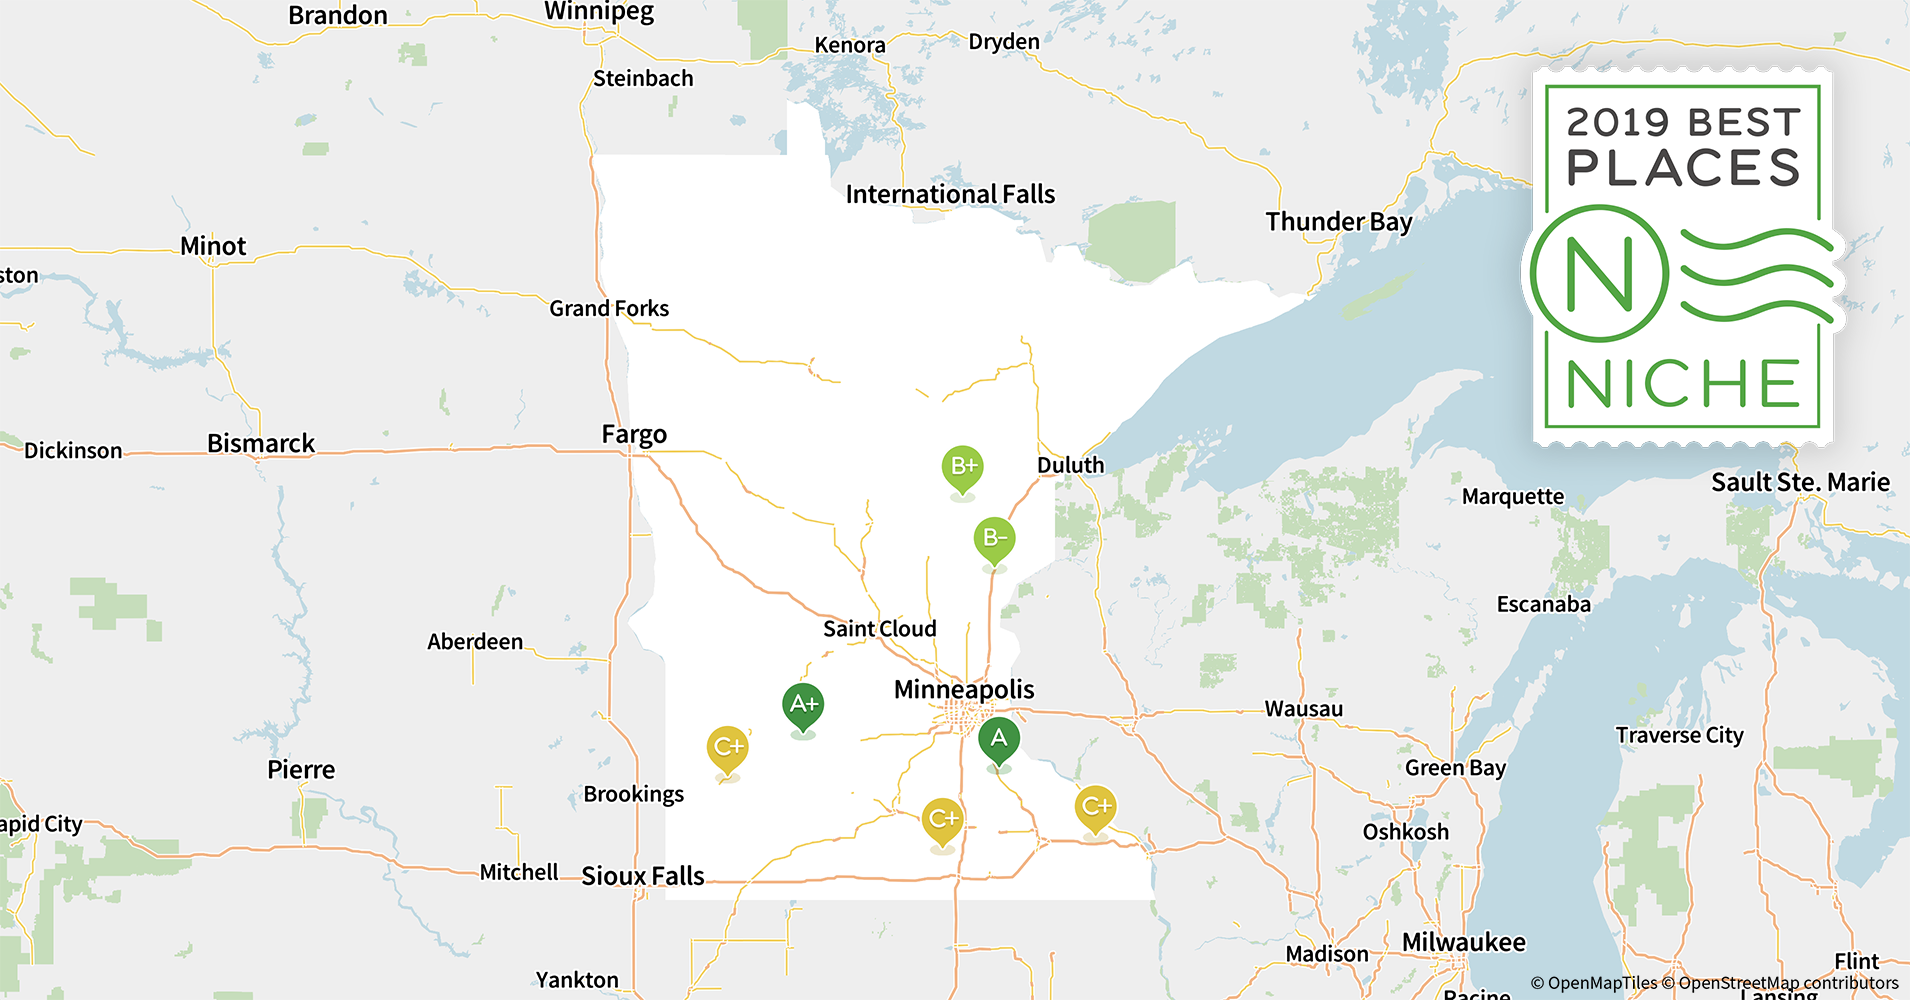 2019 Best Places to Live in Minnesota - Niche Large Map Of C Lake Mn on map of ontario canada lakes, map of road united interstate highway, map mn cities, map of lake michigan, map of balsam lake, map of ny state lakes, map of palm beach county, map of bwca lakes, map of lakes in california, map of ar lakes, map of maine usa, map of lakes in vermont, map of africa lakes, map of bc lakes, map of michigan townships, map of orange county, map of eastern sd lakes, map of minn, map of western pa lakes, map of sask lakes,